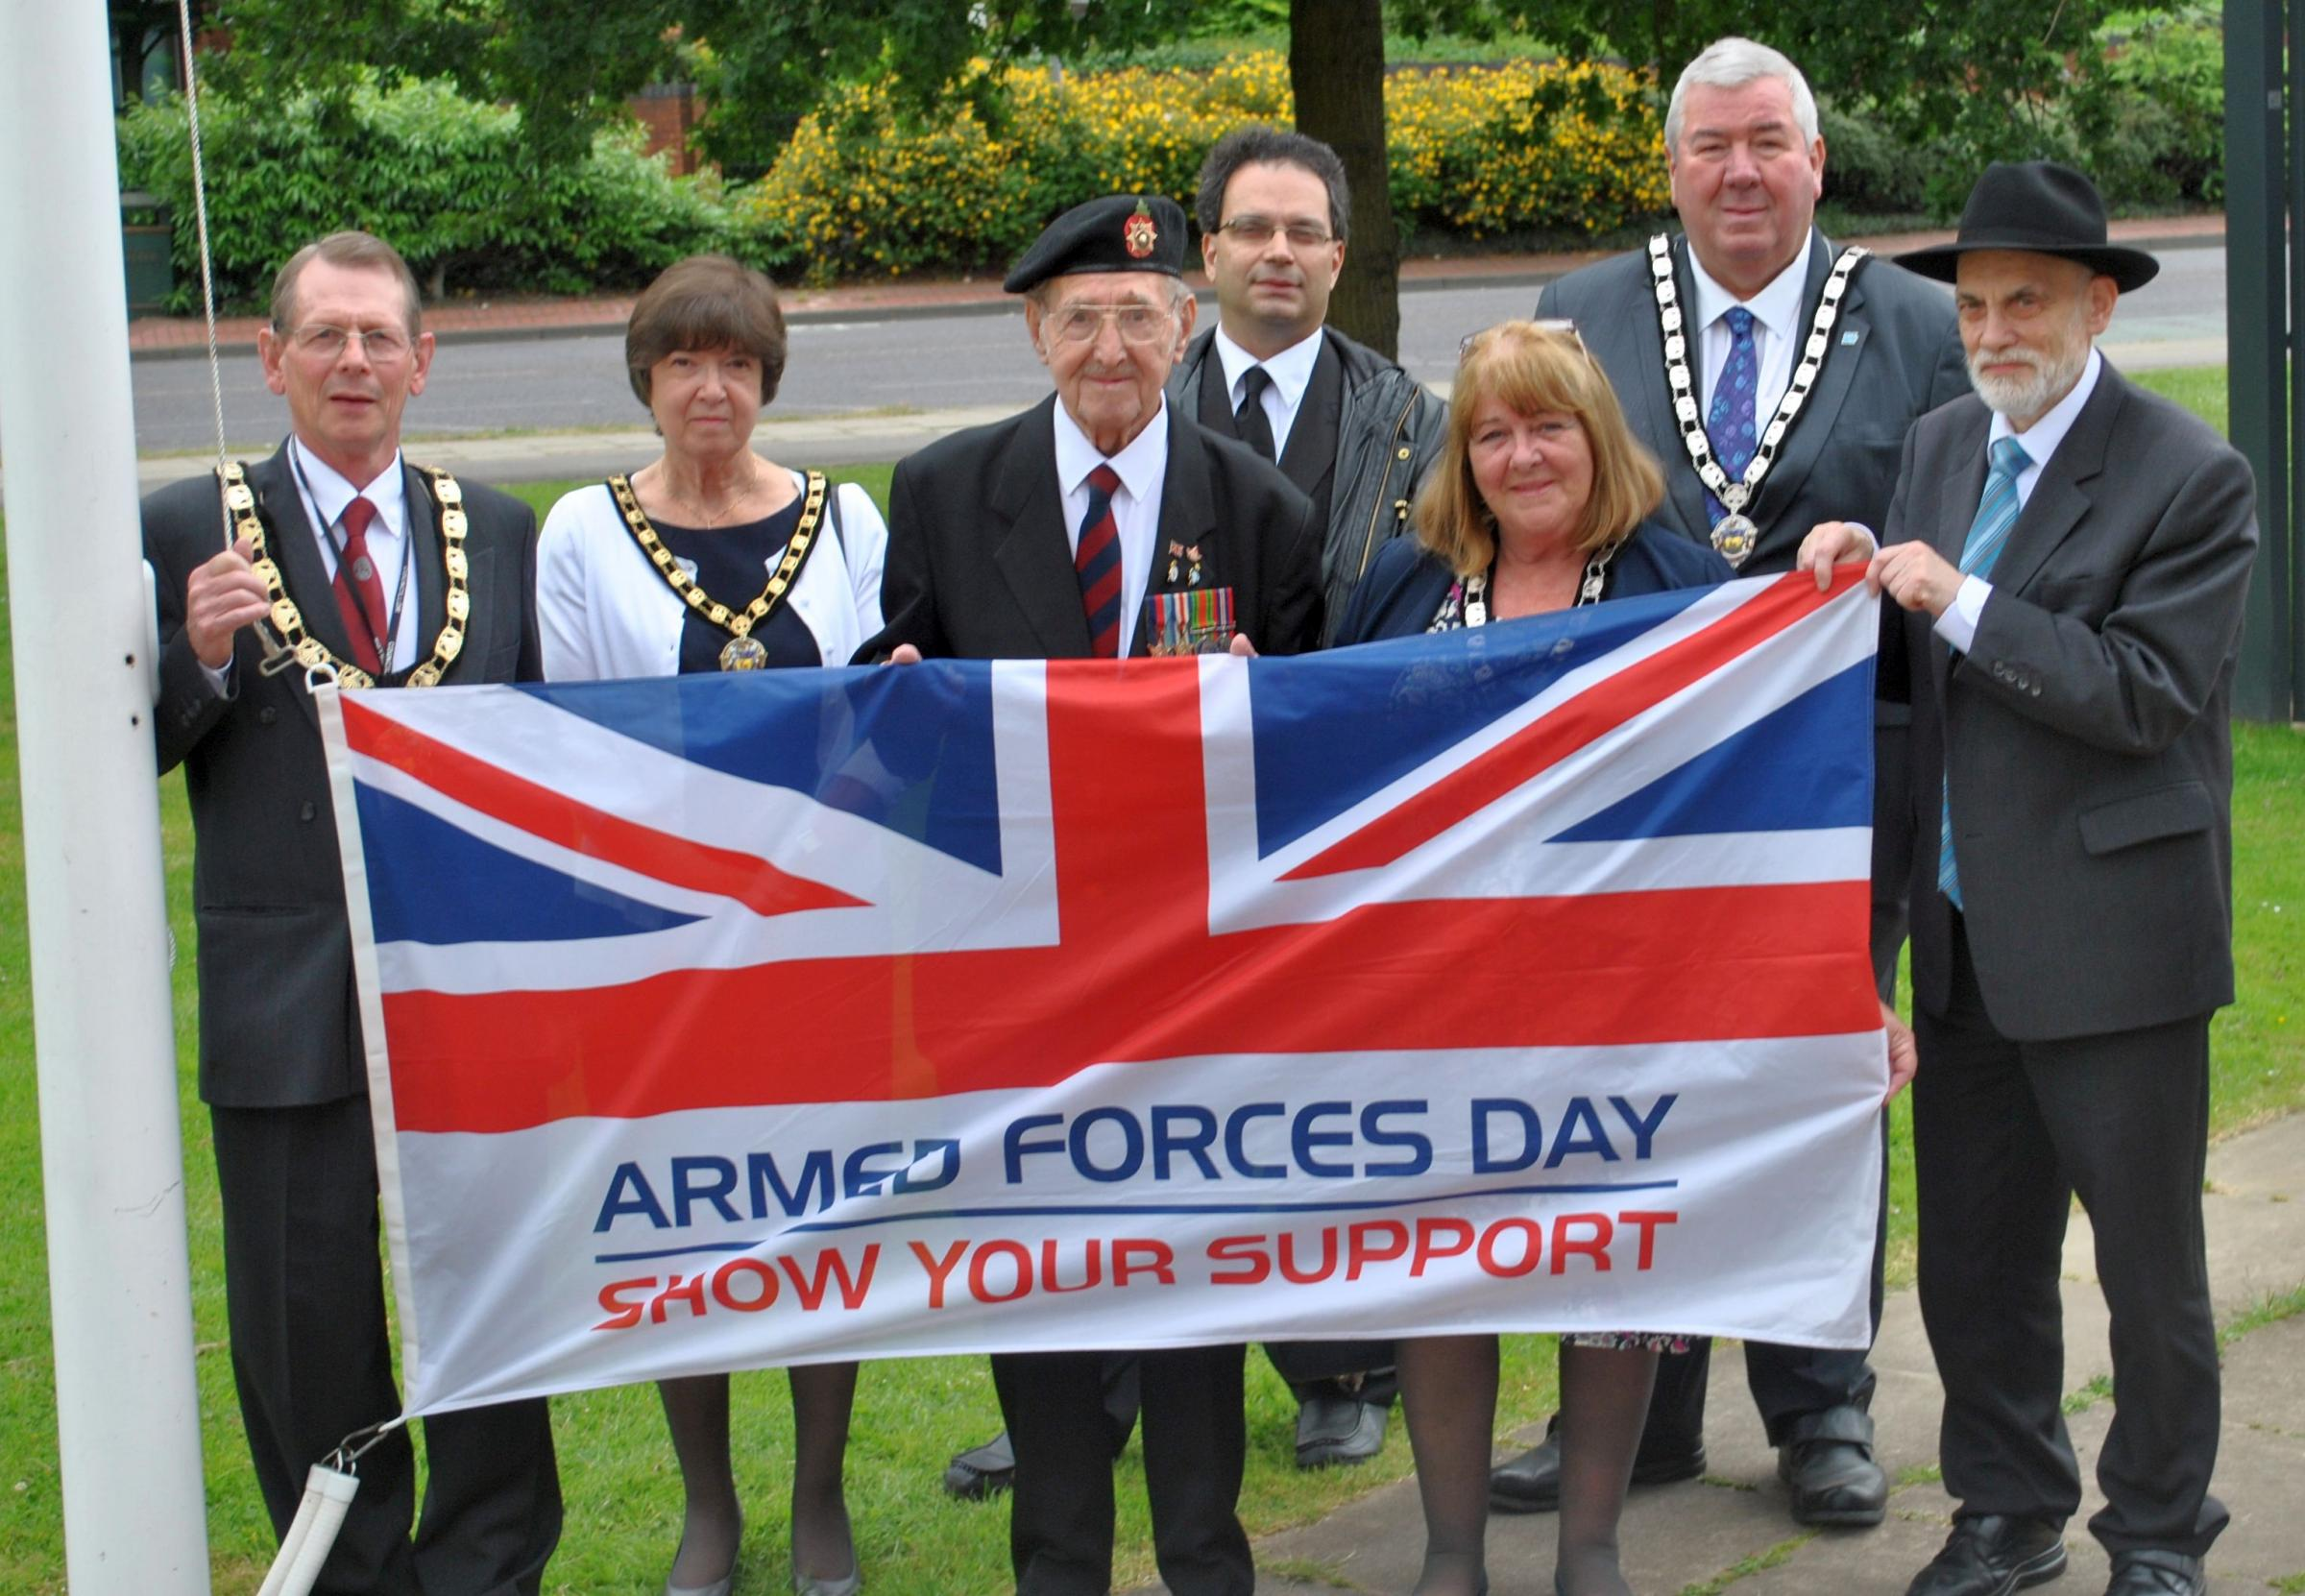 Mayor Councillor Carey Keates led a flag-raising ceremony to commemorate this weekend's Armed Forces Day.